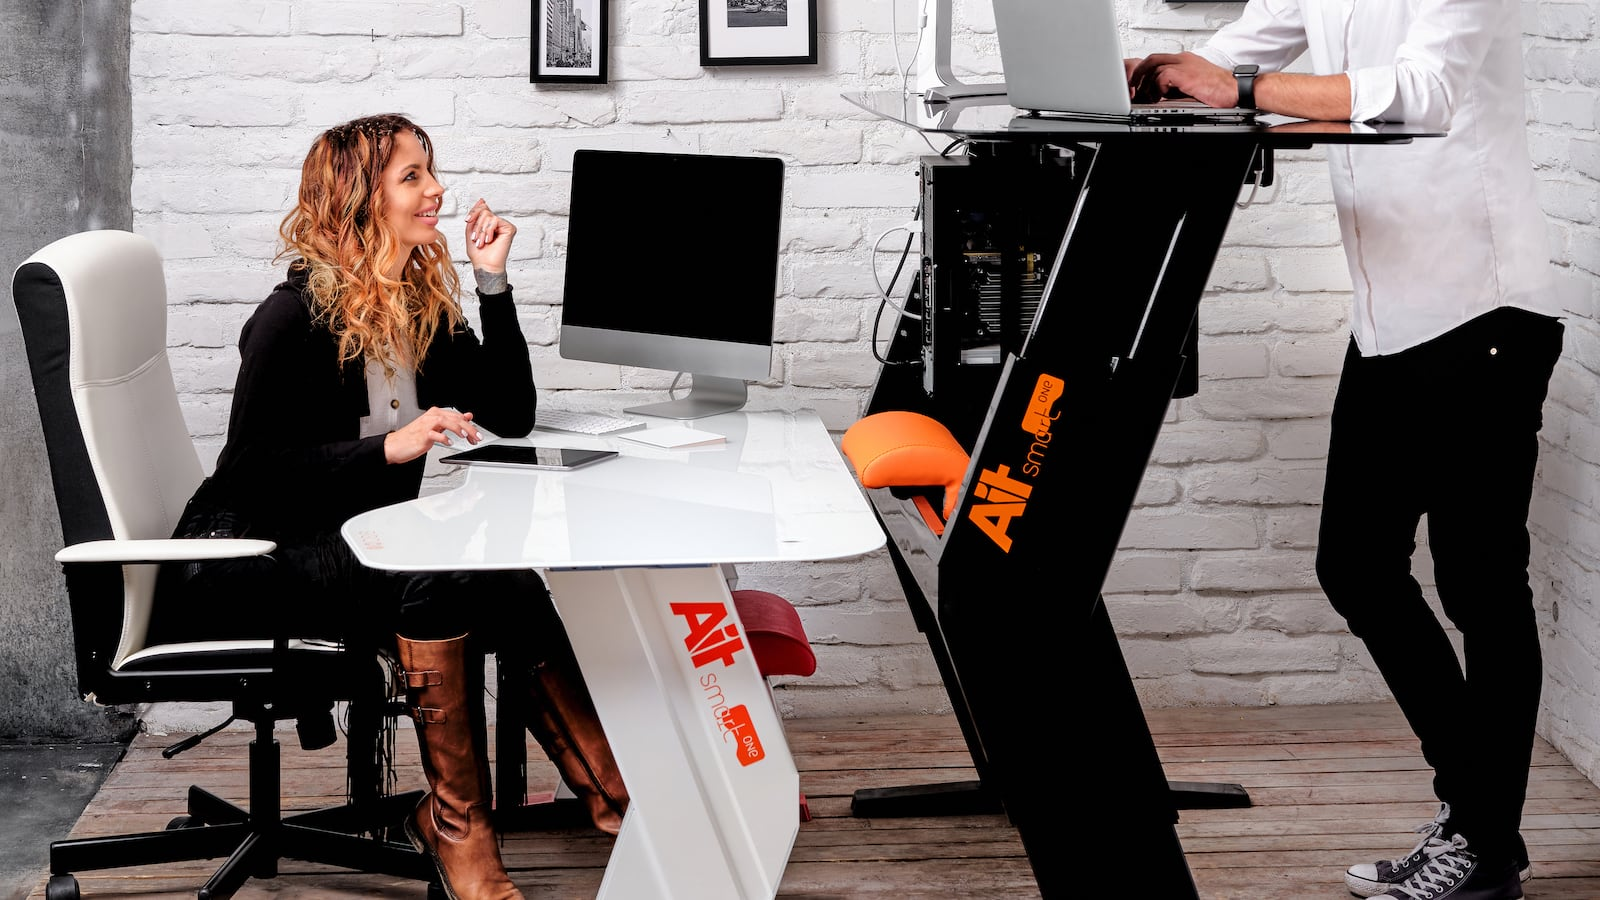 AiT Smart One App-Controlled Desk will change the way you work